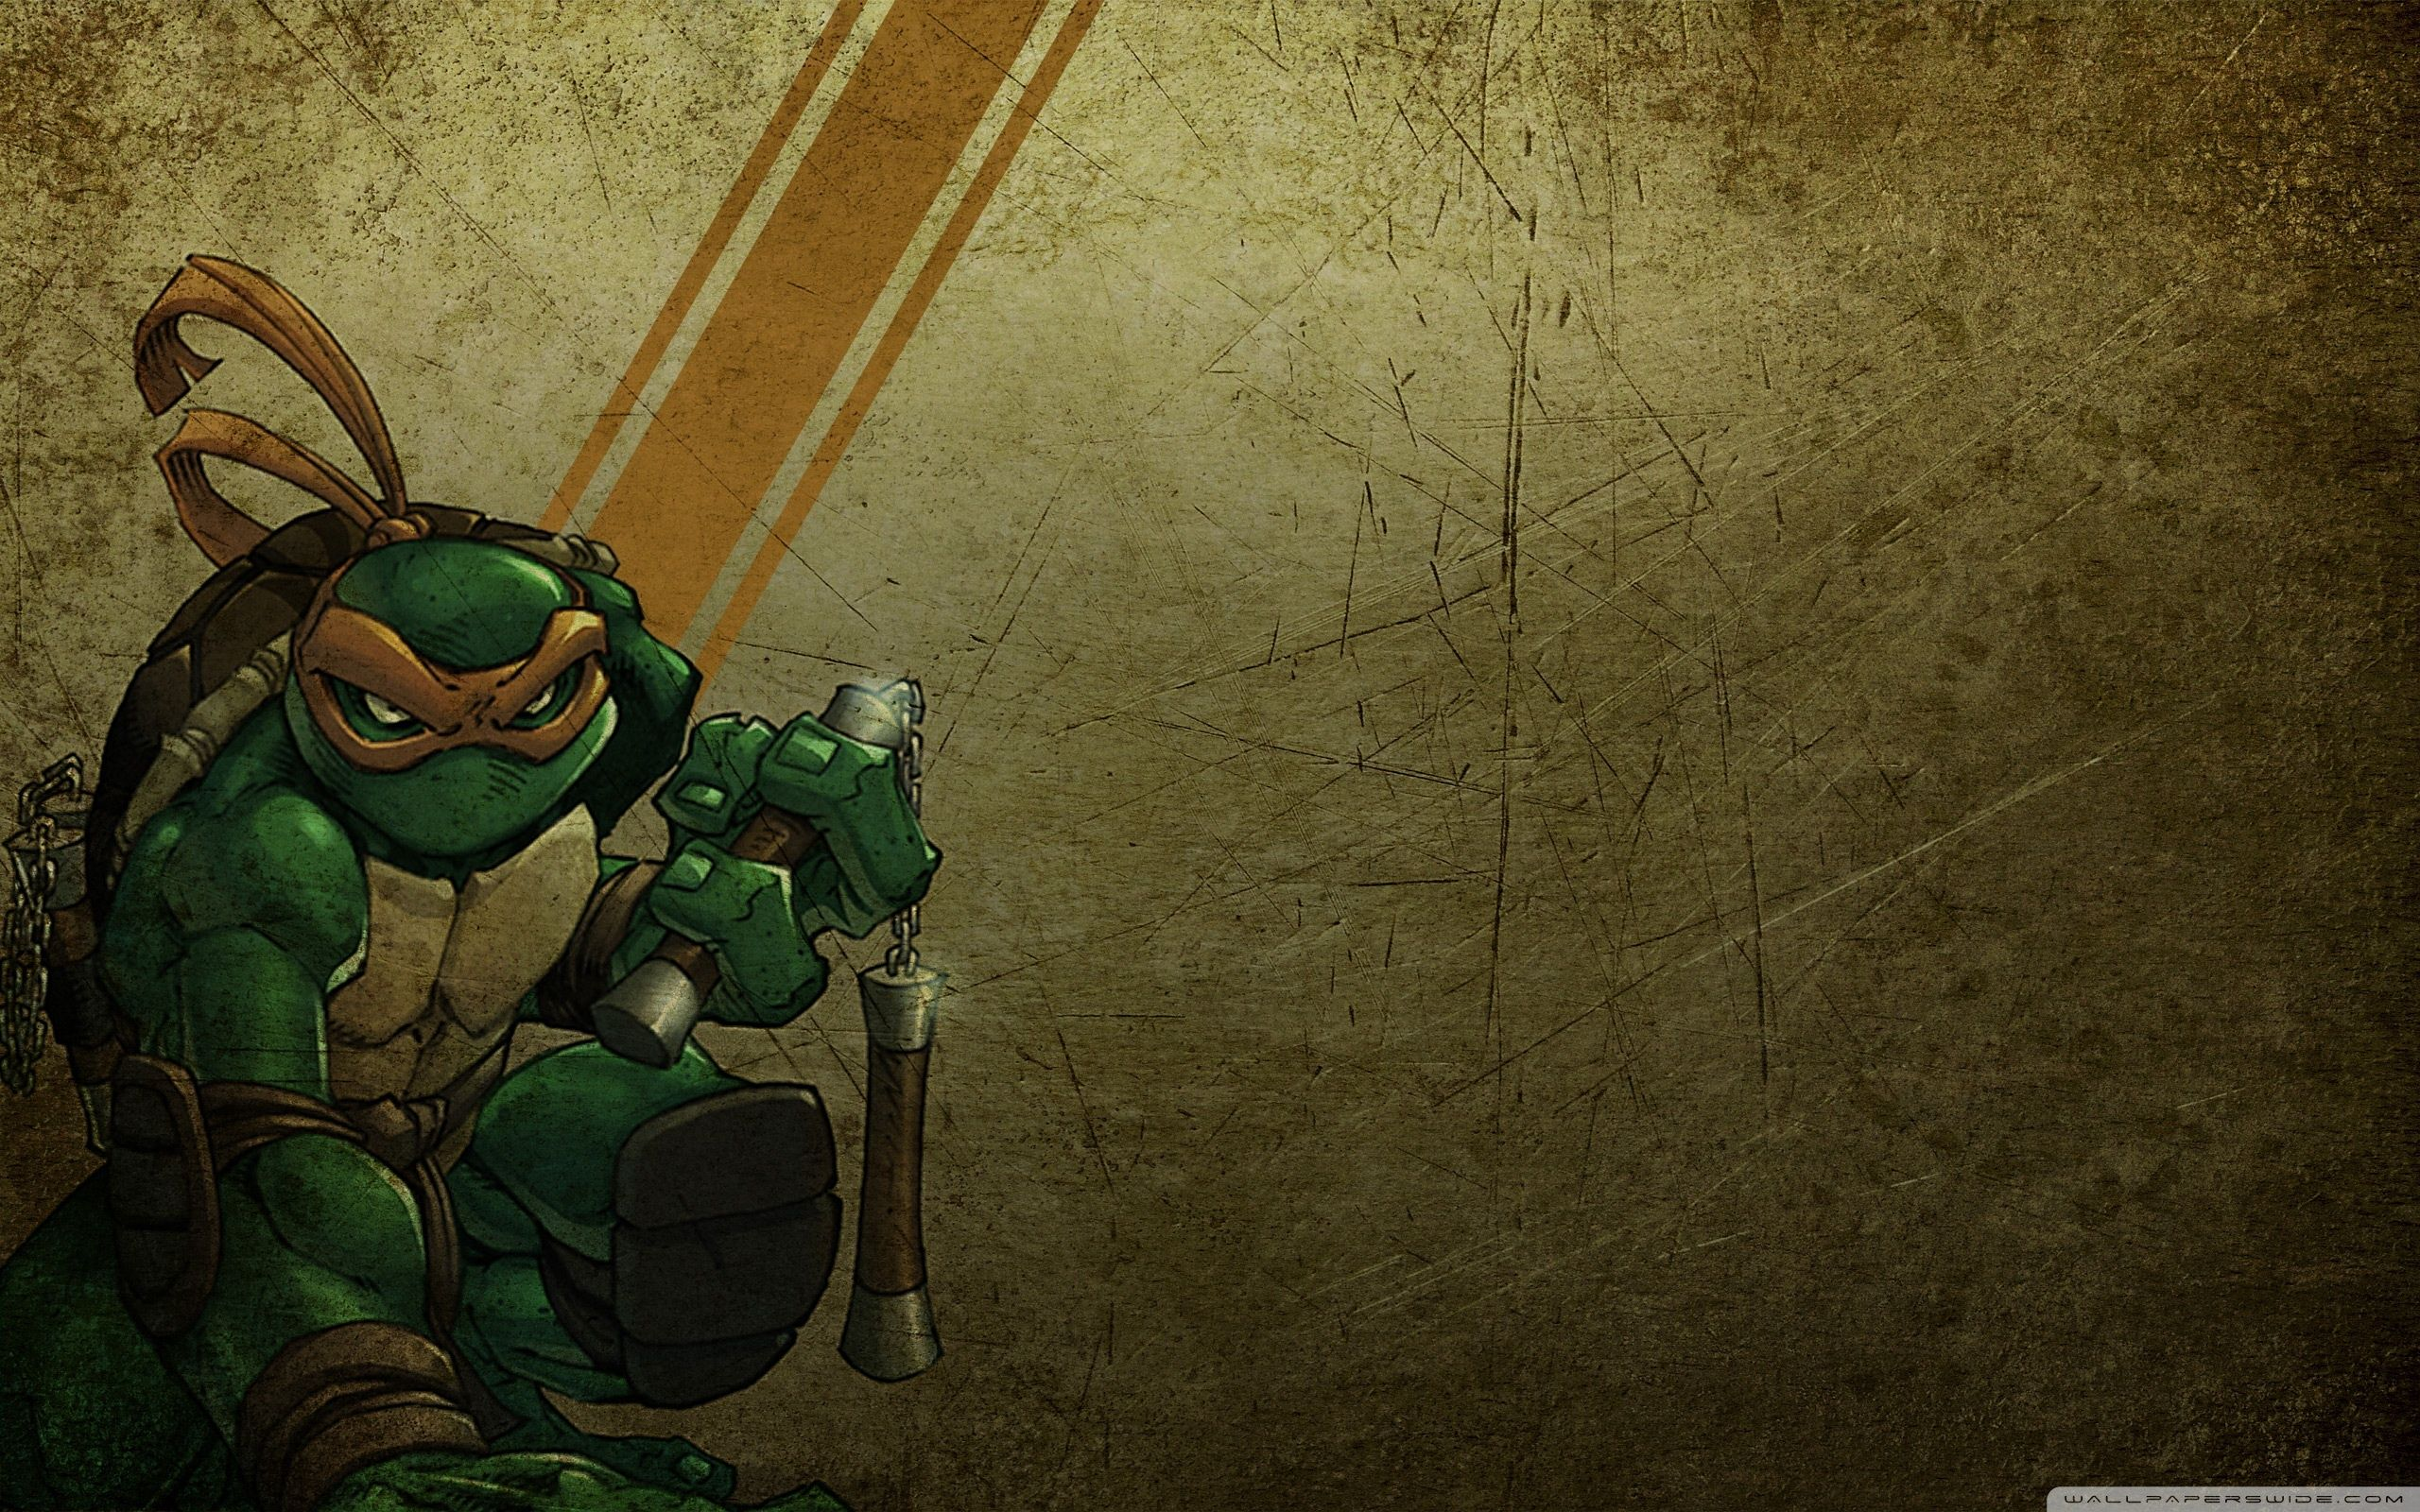 Teenage Mutant Ninja Turtles Michelangelo Wallpapers Top Free